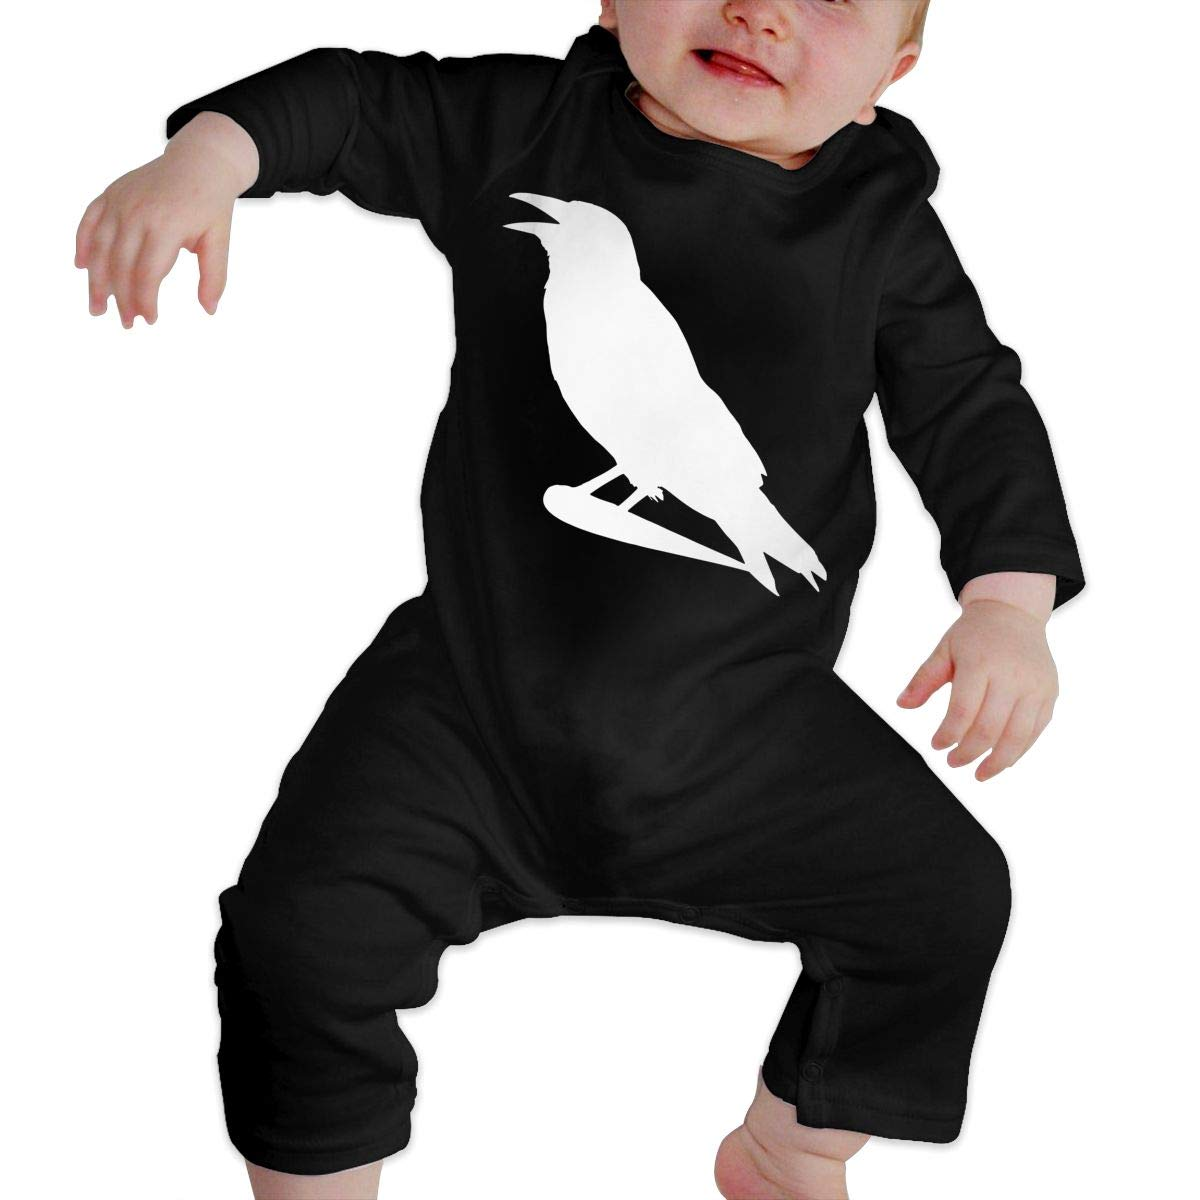 Infant Baby Girls Cotton Long Sleeve Crow Silhouette Climb Romper Funny Printed Romper Clothes